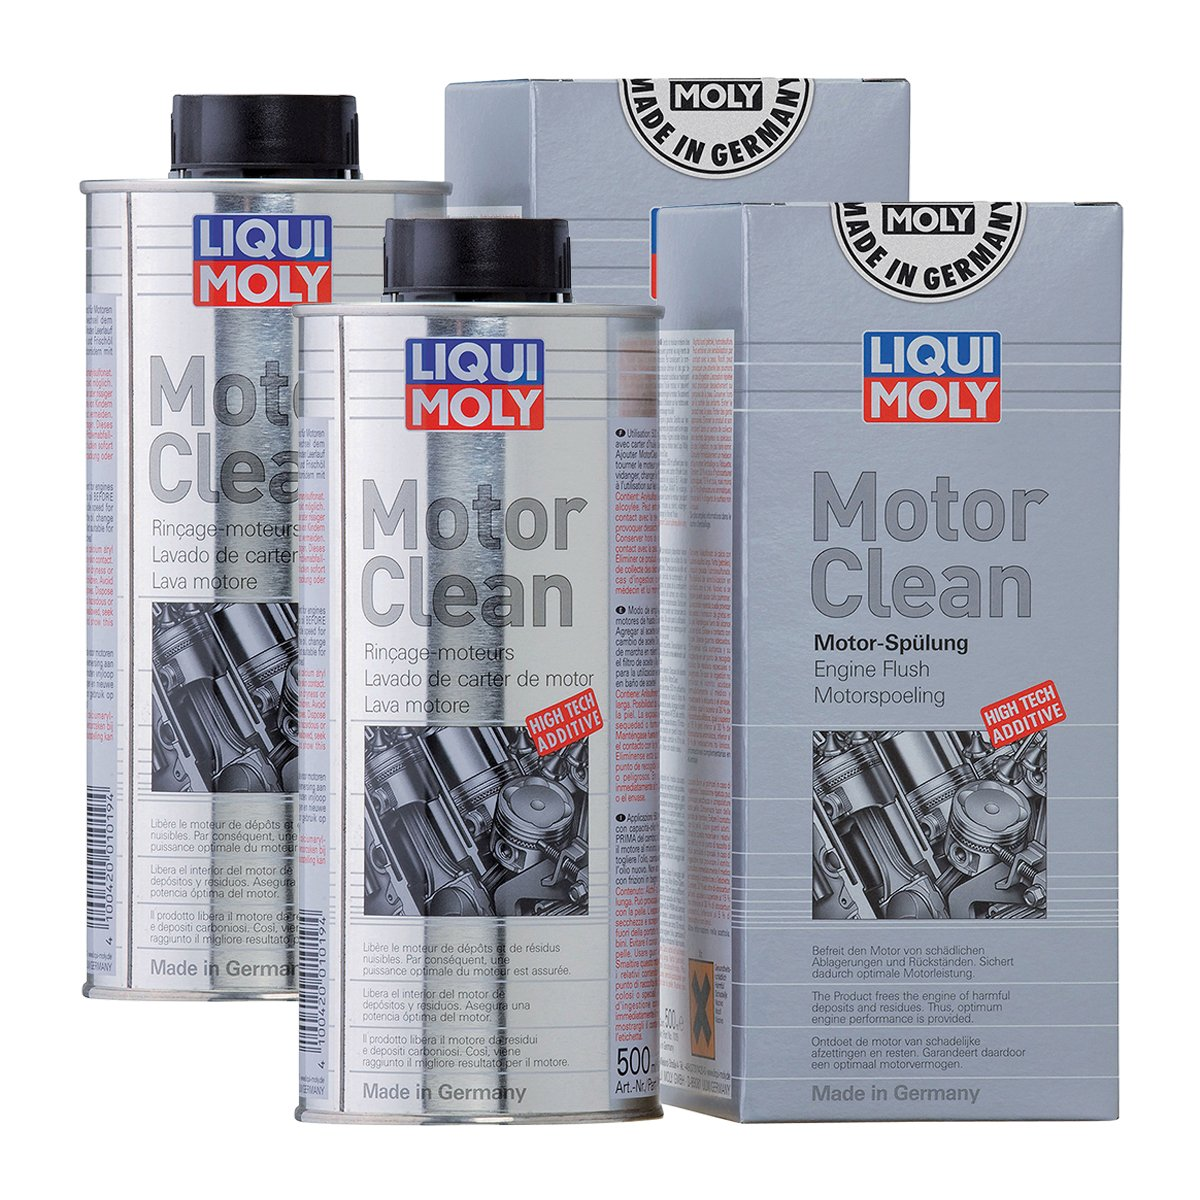 2x LIQUI MOLY 1019 Motor Clean Motorreinigung Additiv 500ml von LIQUI-MOLY_bundle